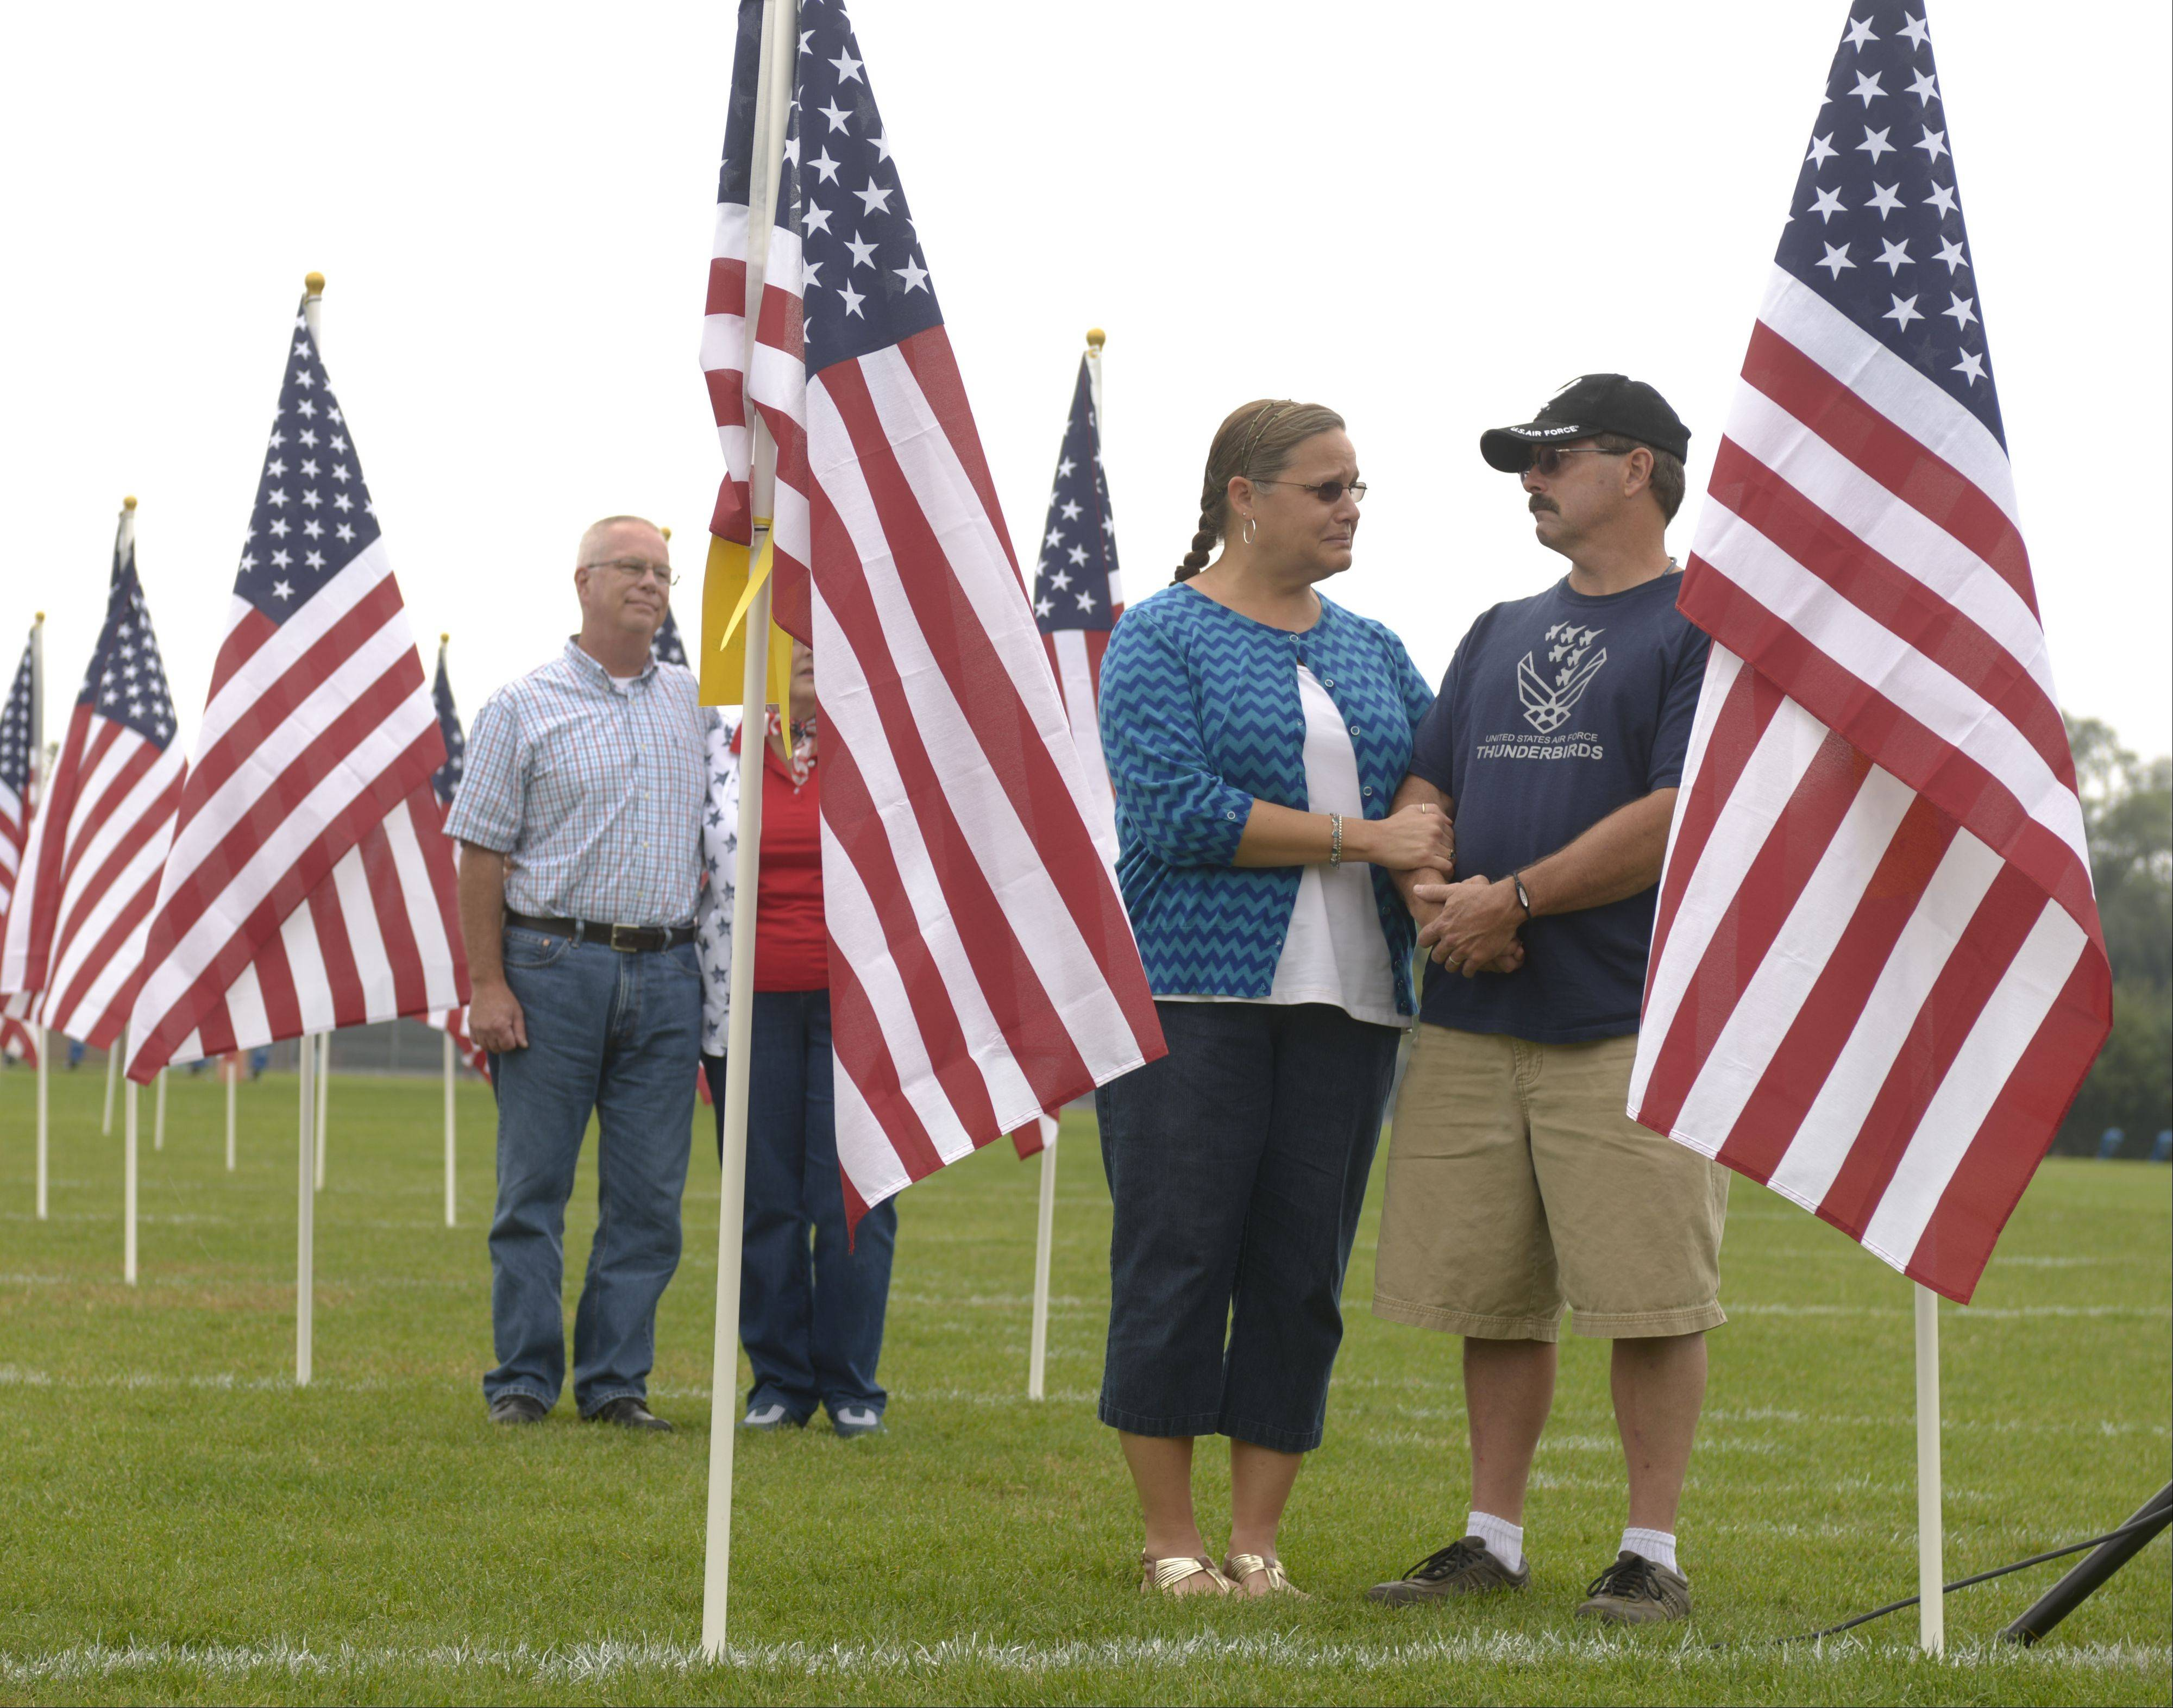 Aurora�s Healing Field of Honor officially will open at 1 p.m. Sunday and will feature 2,013 flags. Christine and Bruce Darby stand with the two flags for their children, Nathanial and Allison, who are both serving in the U.S. Air Force, during a ceremony last month to preview the event.